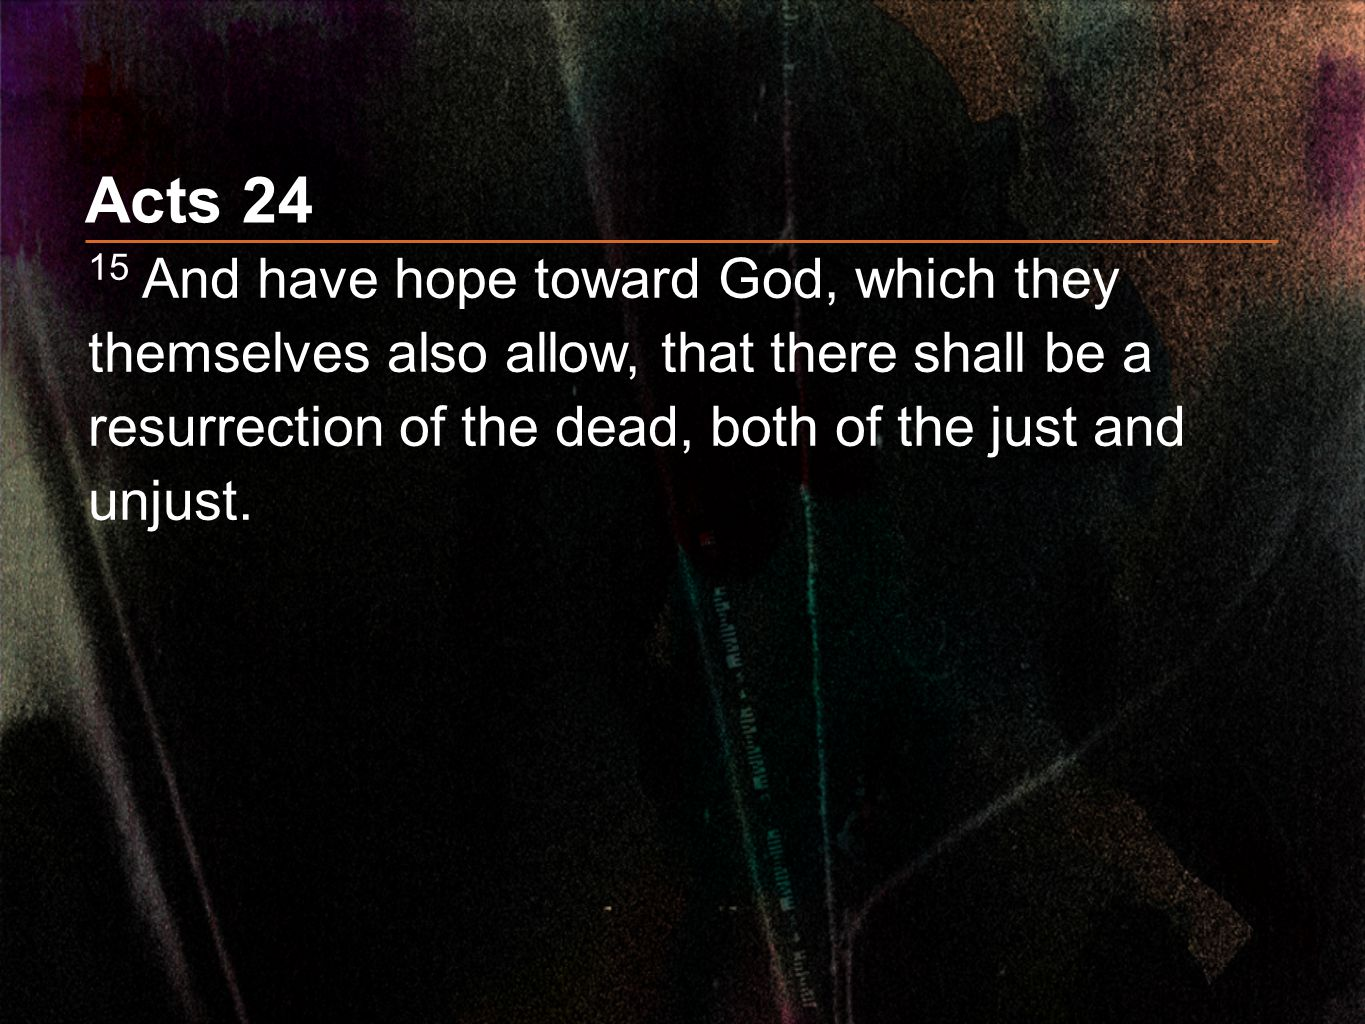 Acts 24 15 And have hope toward God, which they themselves also allow, that there shall be a resurrection of the dead, both of the just and unjust.